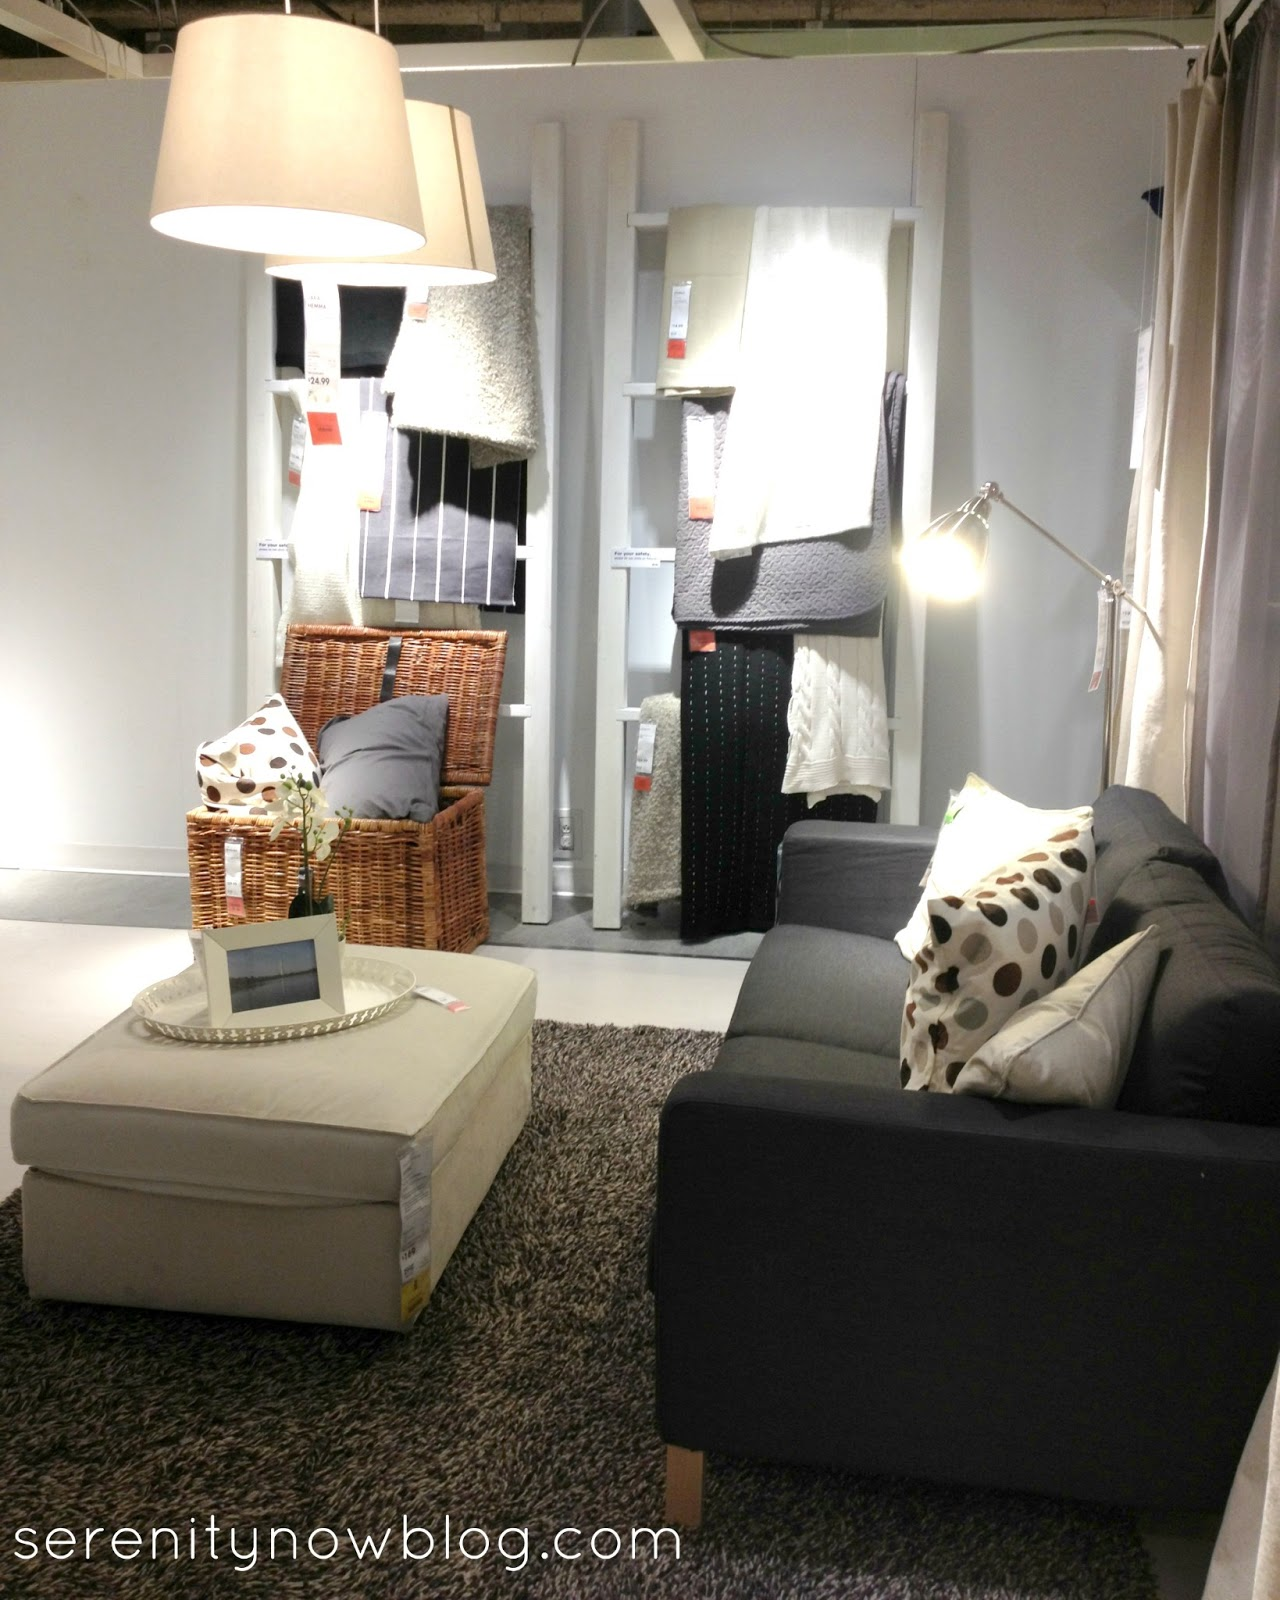 Serenity Now IKEA Shopping Trip and Home Decor Ideas